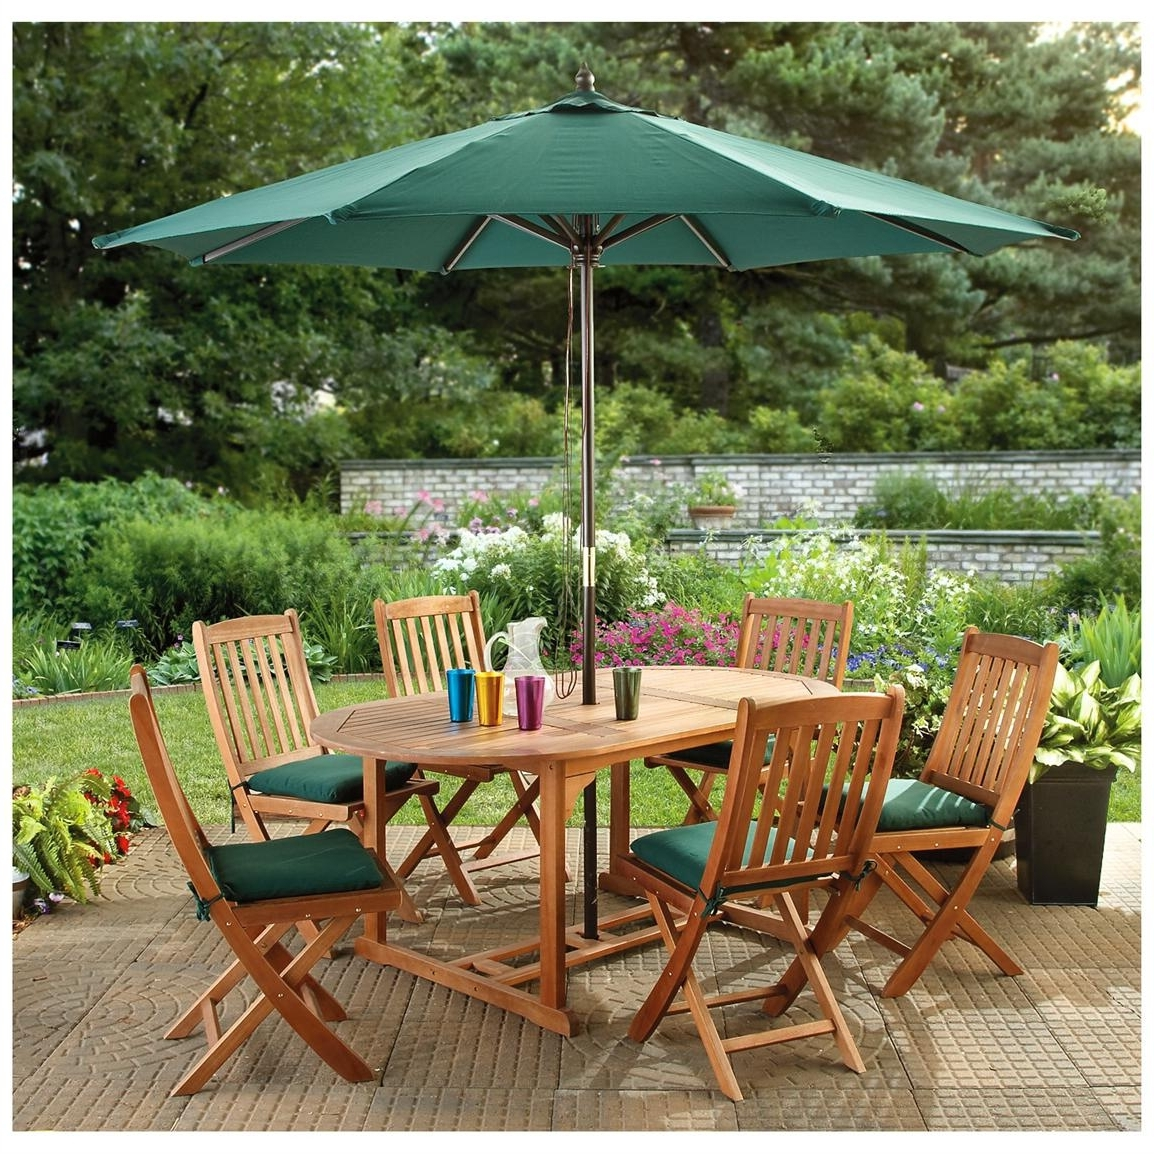 Well Known Patio Dining Umbrellas In Patio: Awesome Umbrella Patio Set Frontgate Outdoor Furniture (View 5 of 20)